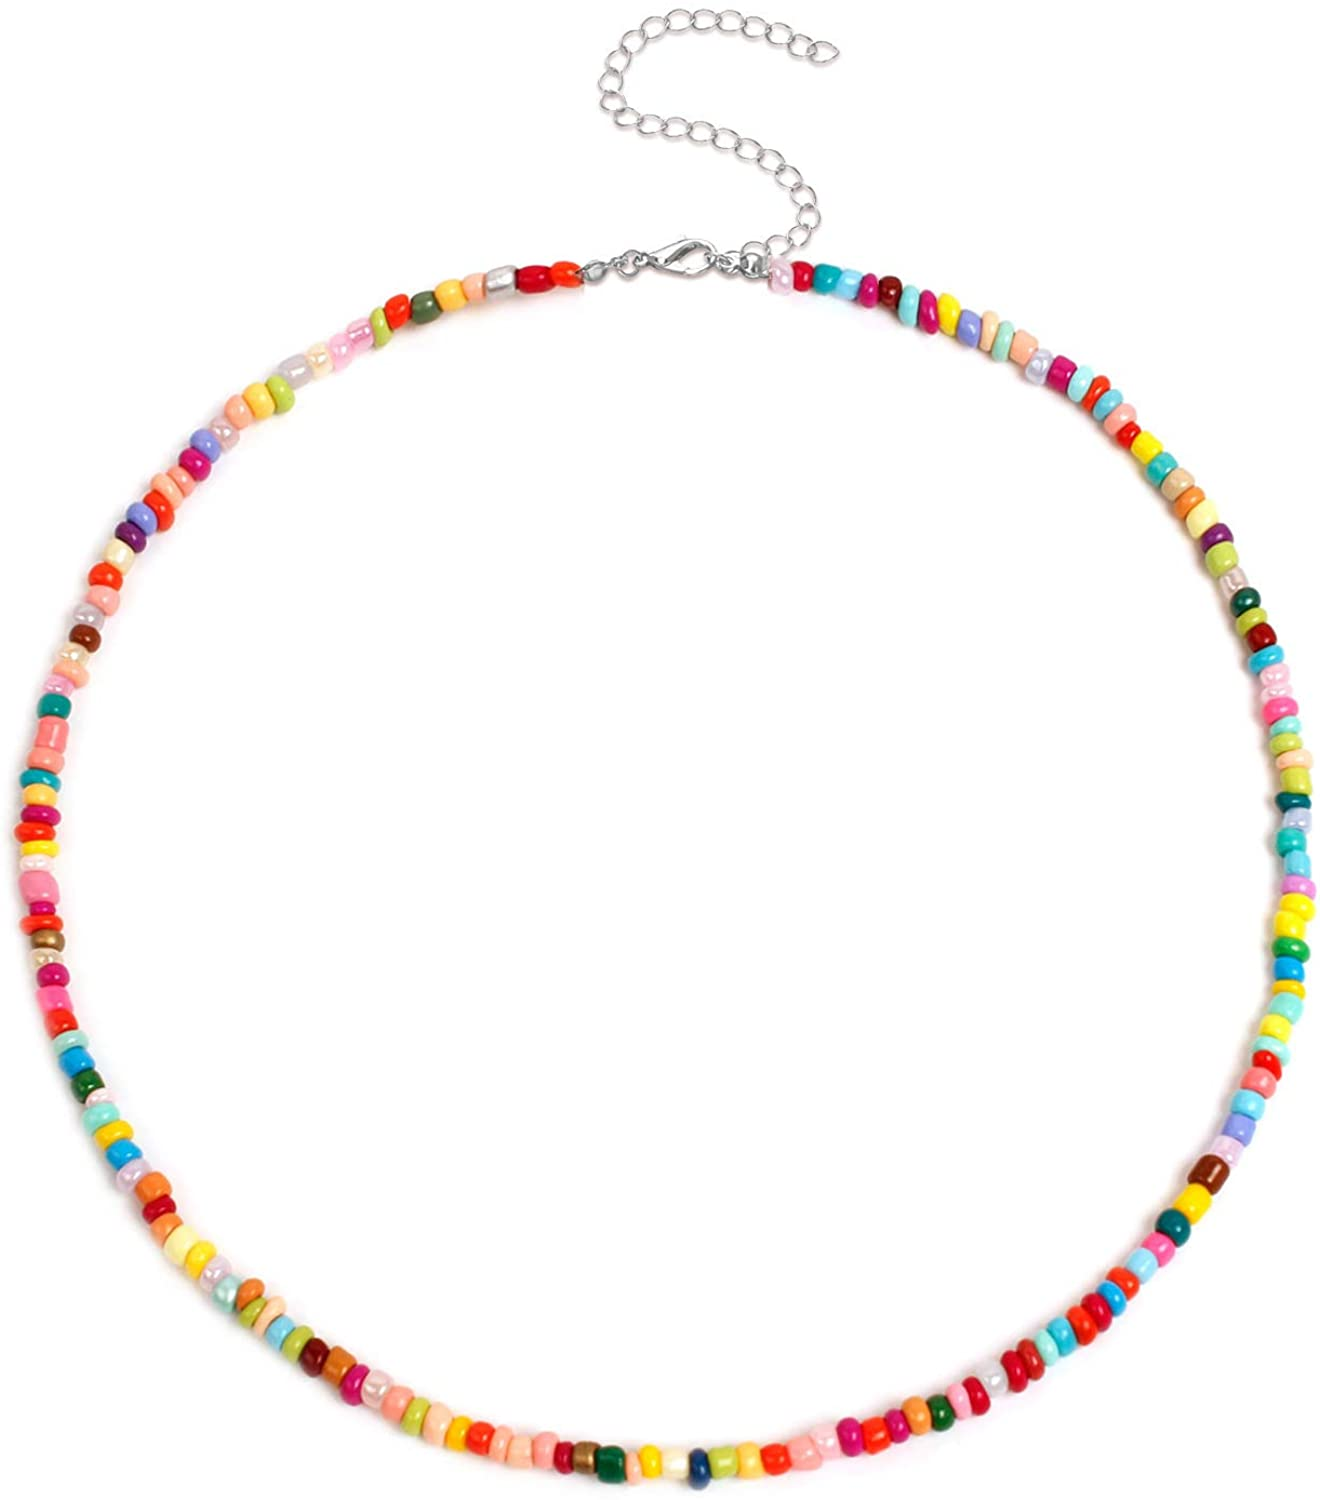 HUJUON Bohemia Colorful Rice Bead Choker Necklace for Women Rainbow Seed Bead Necklaces Seaside Beach Beaded Short Necklace Girl Jewelry